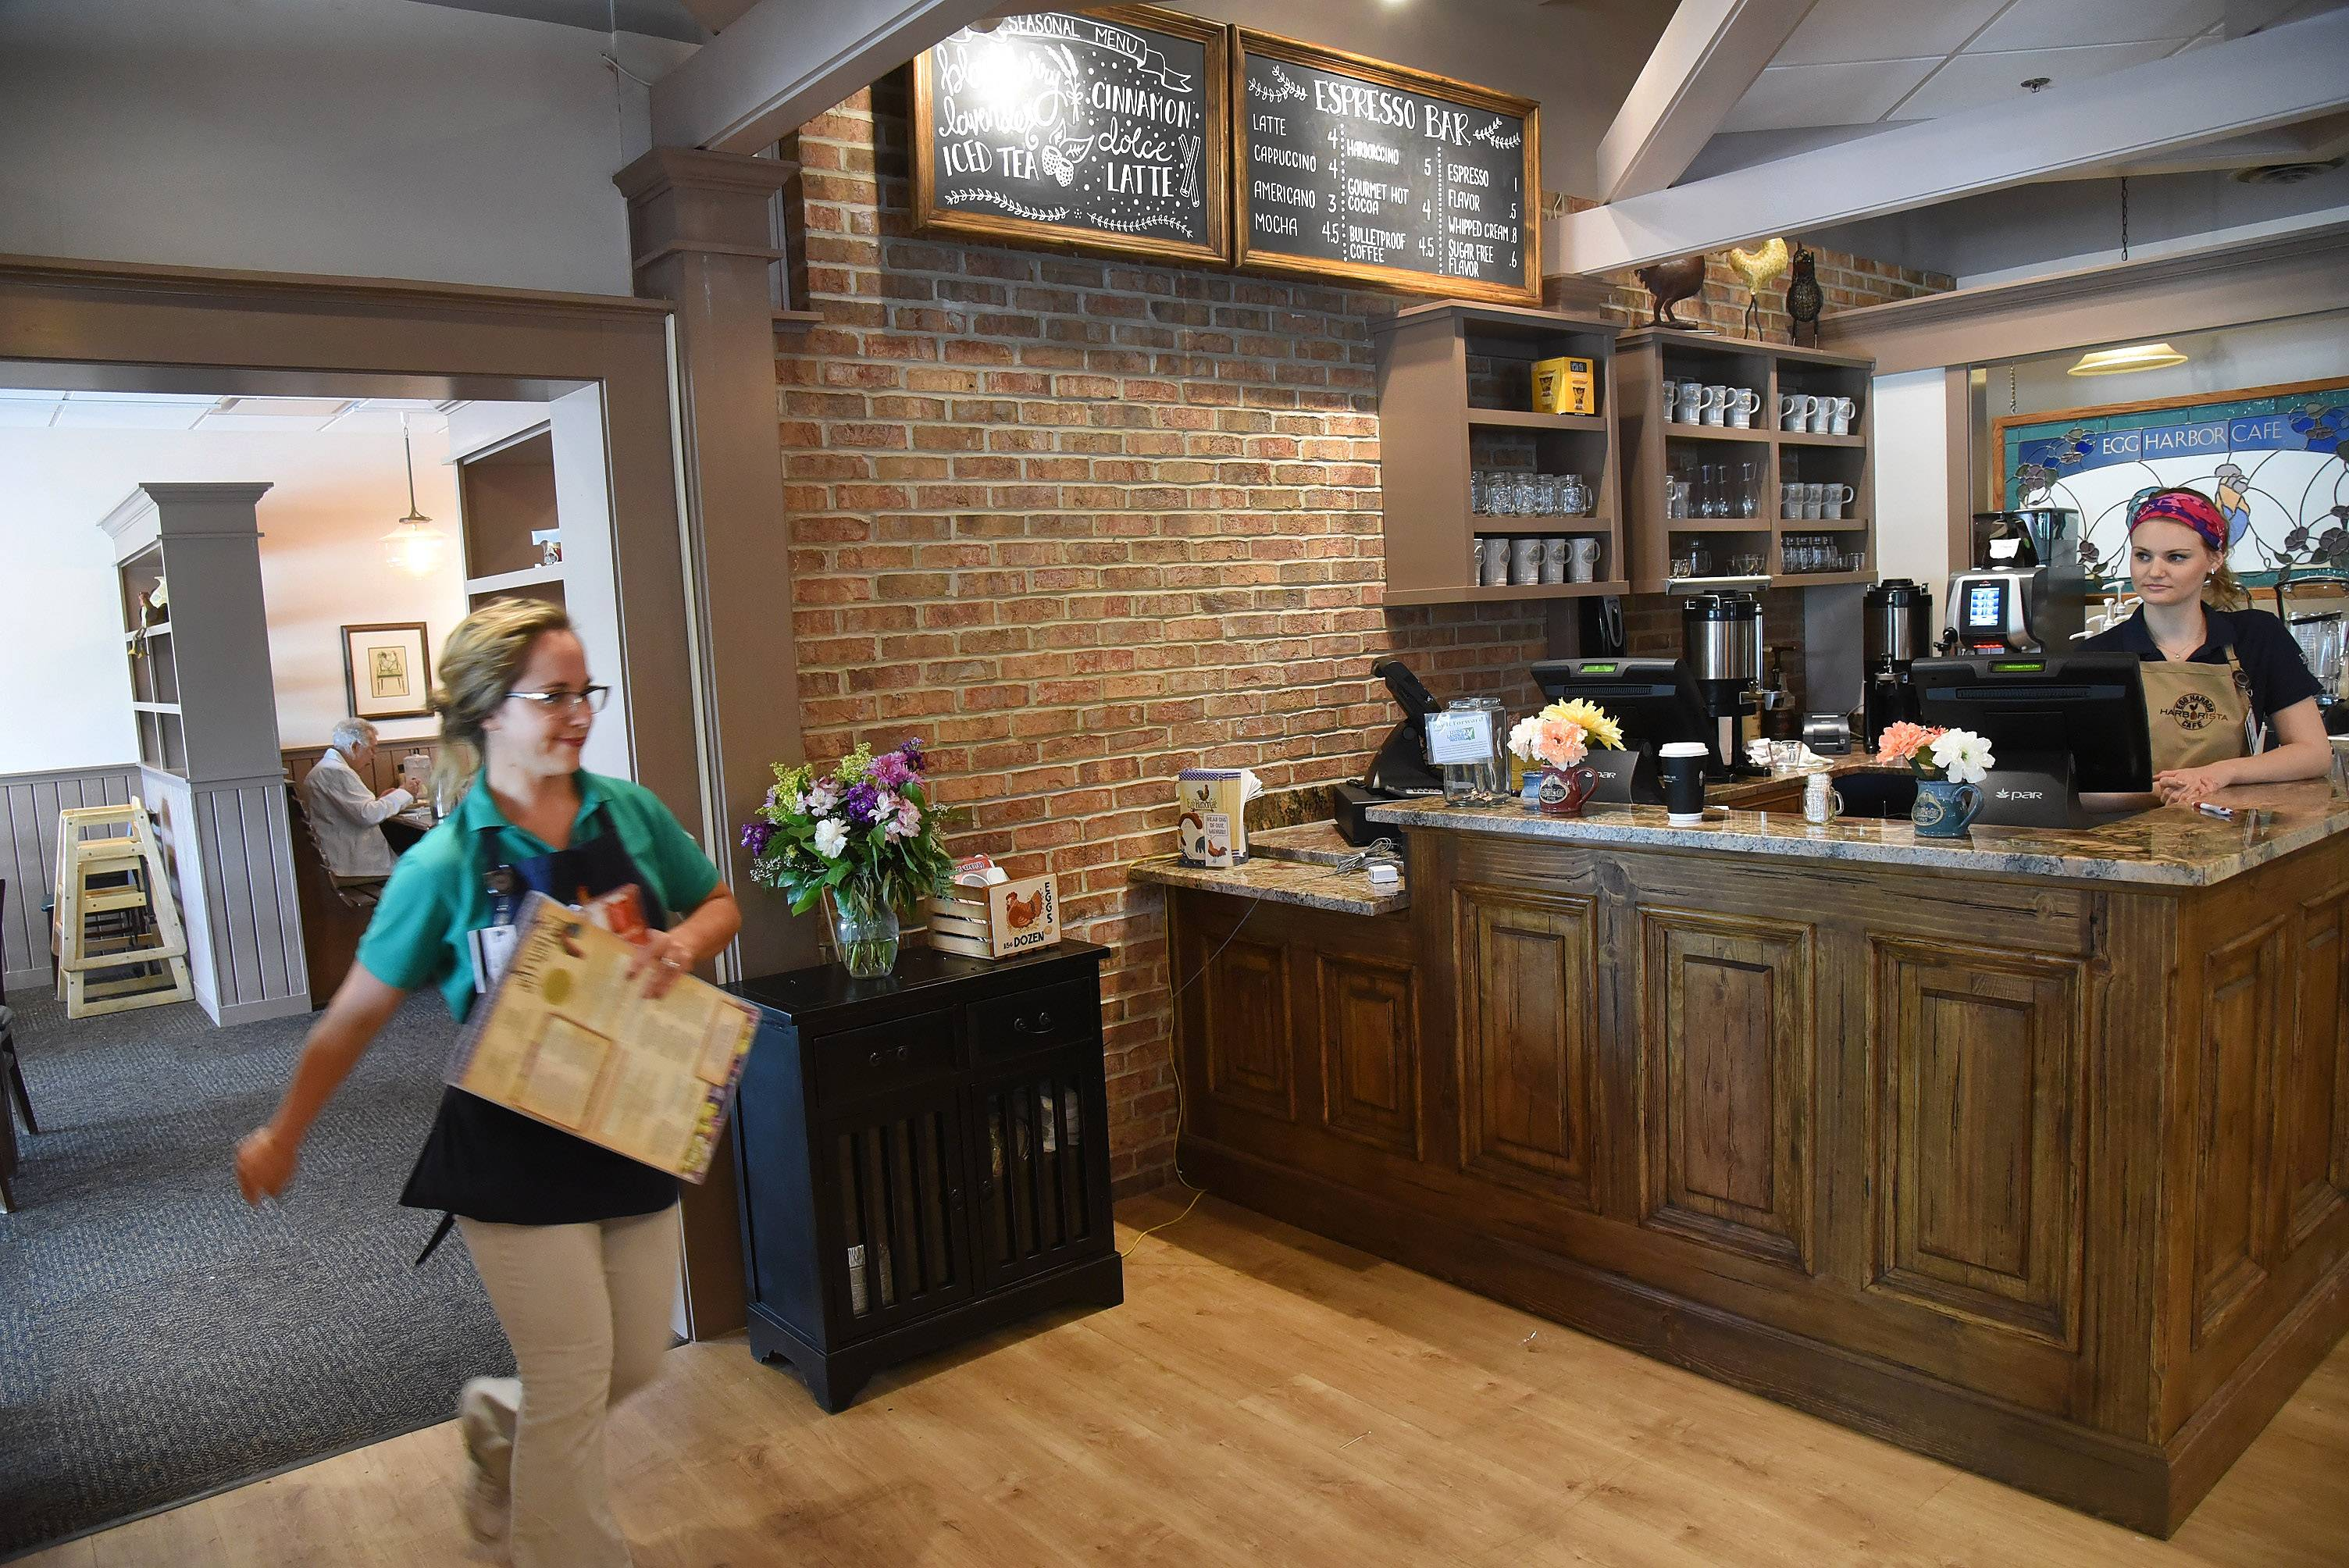 A new barista bar is part of the expanded Egg Harbor Cafe in downtown Arlington Heights. The restaurant is marketing the bar to commuters who want coffee to-go.